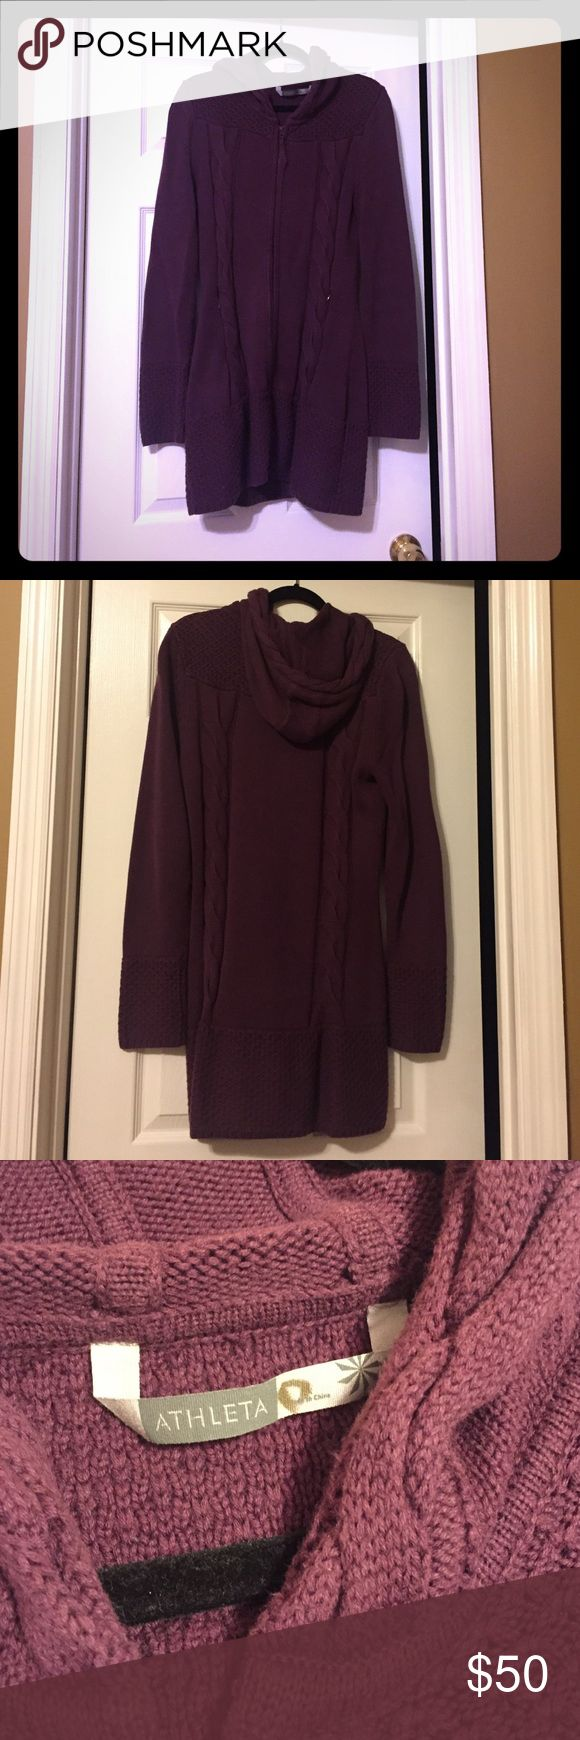 Athleta Large Plum Sweater Used, but no signs of wear. Beautiful croquet detailing around neck and sleeves Athleta Sweaters Cardigans